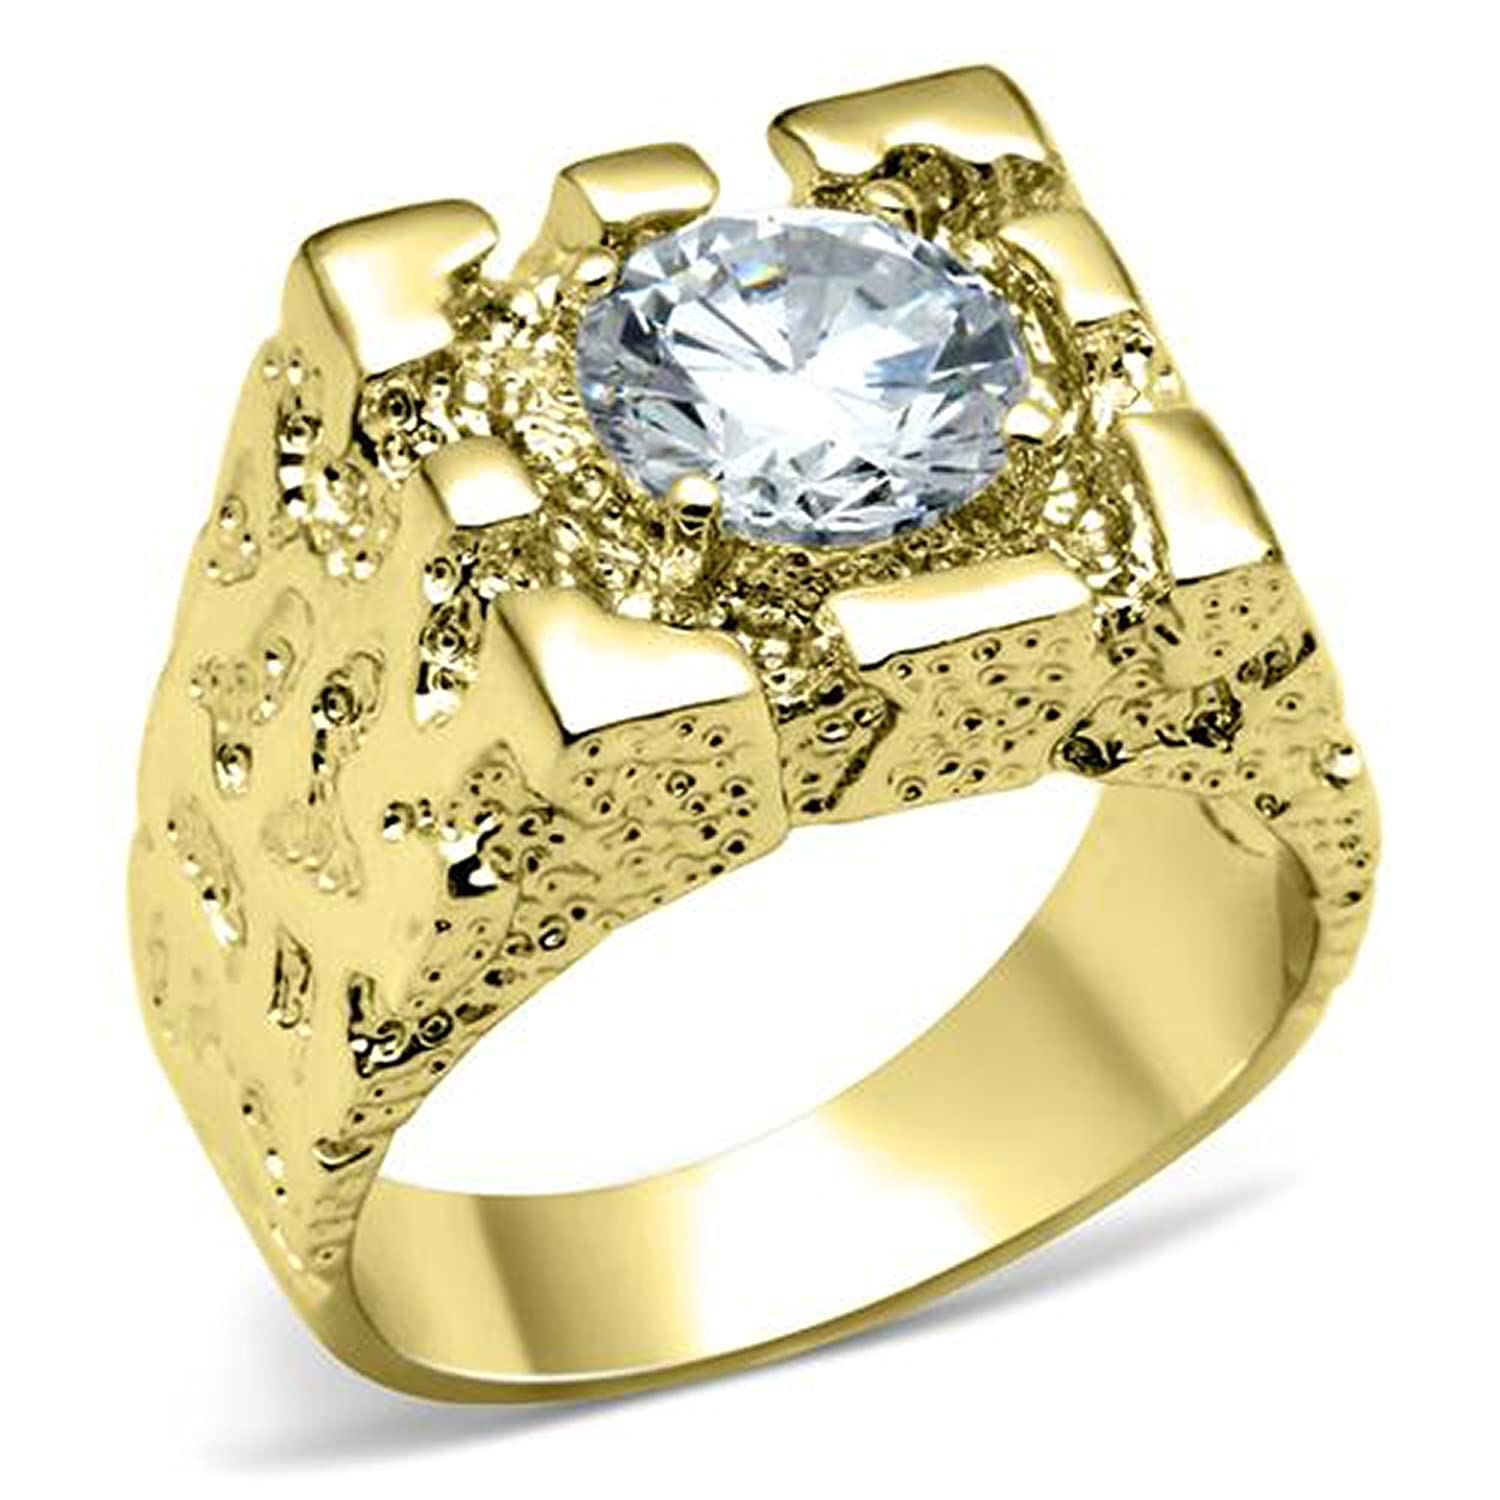 Men's Gold Plated AAA Grade Cubic Zircon CZ Ring 11 12 13 2W052